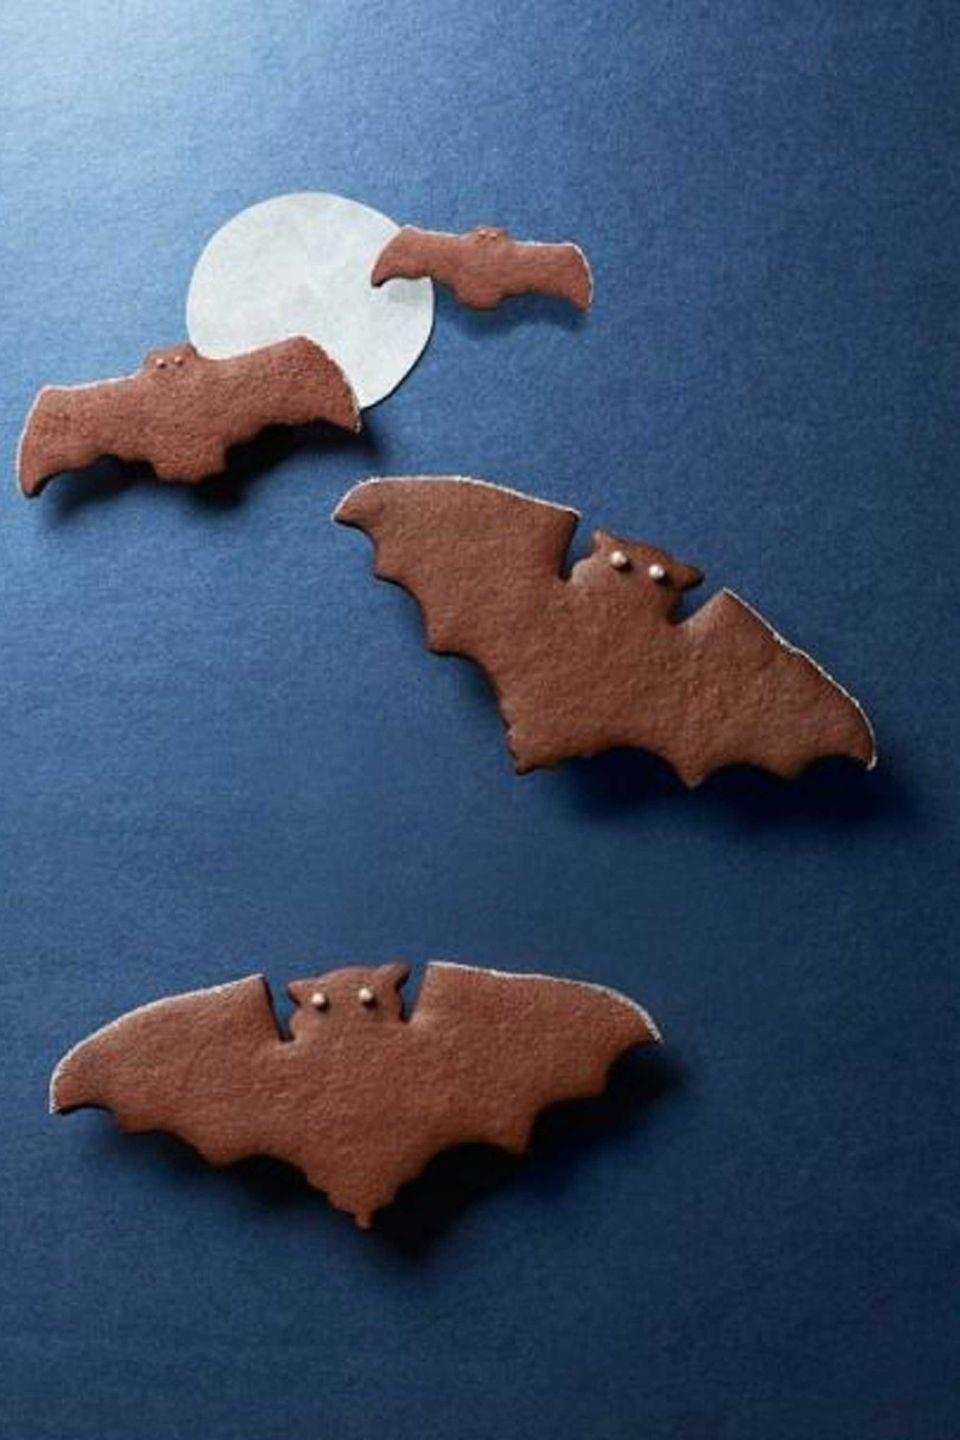 """<p>Spice it up this Halloween with these chocolatey bat cookies, flavored with cinnamon and cardamom.</p><p><strong><a href=""""https://www.countryliving.com/food-drinks/recipes/a5688/spiced-chocolate-bat-cookies-recipe-clx1014/"""" rel=""""nofollow noopener"""" target=""""_blank"""" data-ylk=""""slk:Get the recipe"""" class=""""link rapid-noclick-resp"""">Get the recipe</a></strong>.  </p>"""